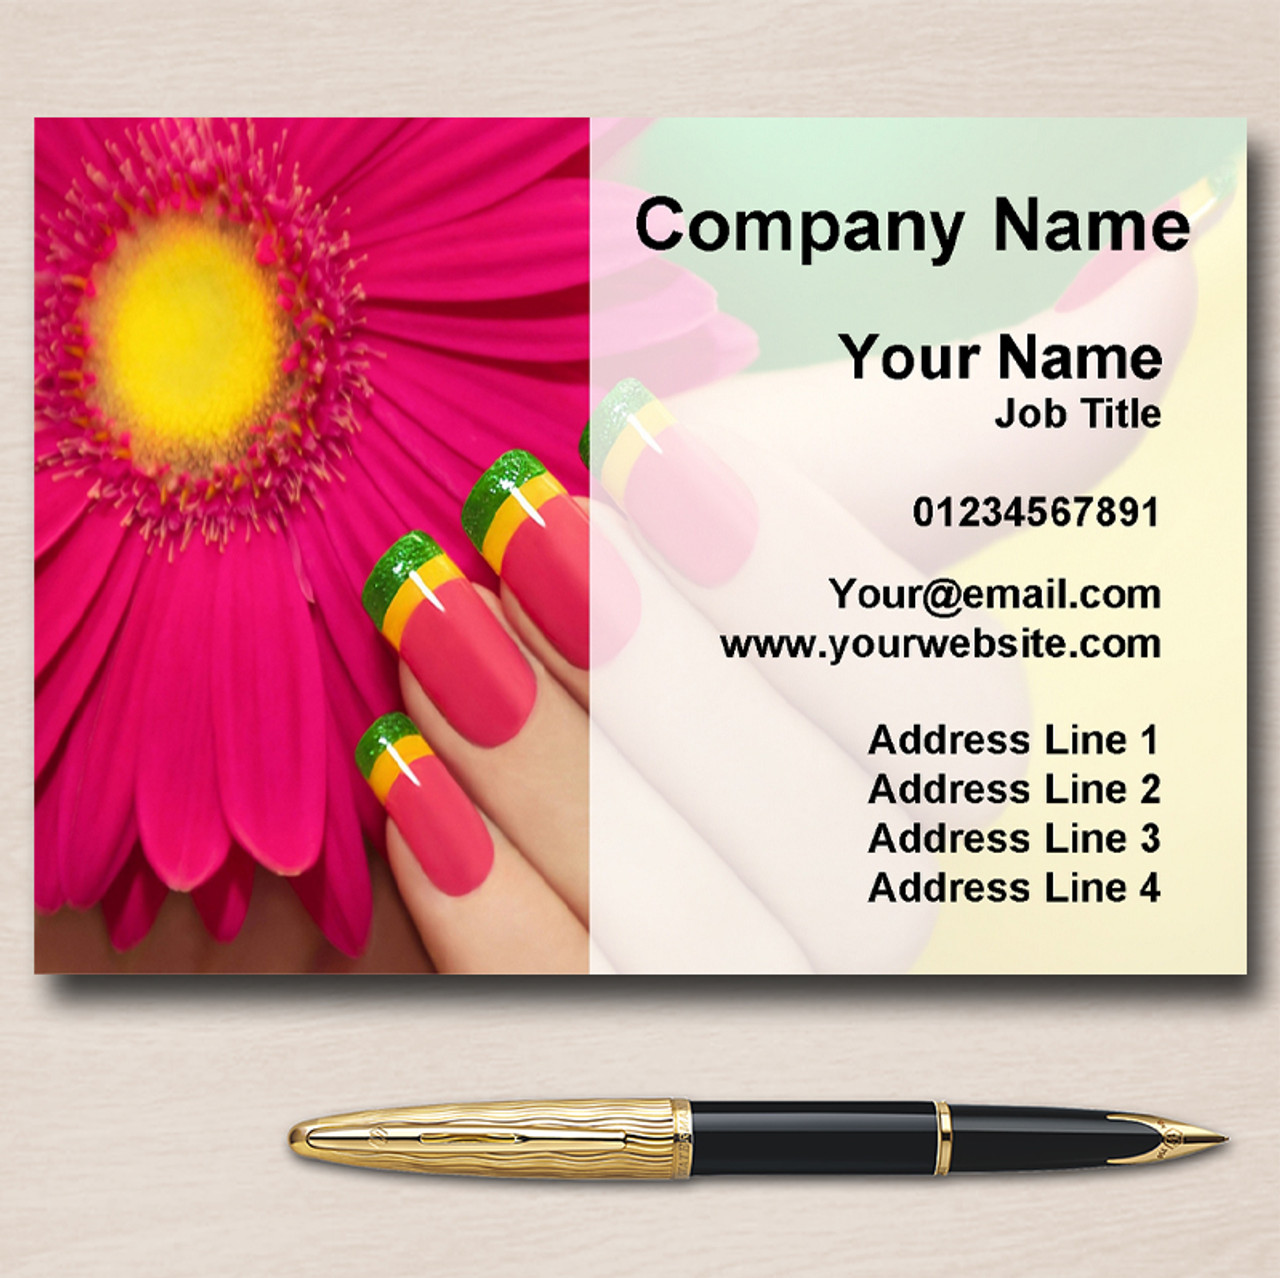 Nail Manicure Pedicure Beauty Salon Personalised Business Cards ...